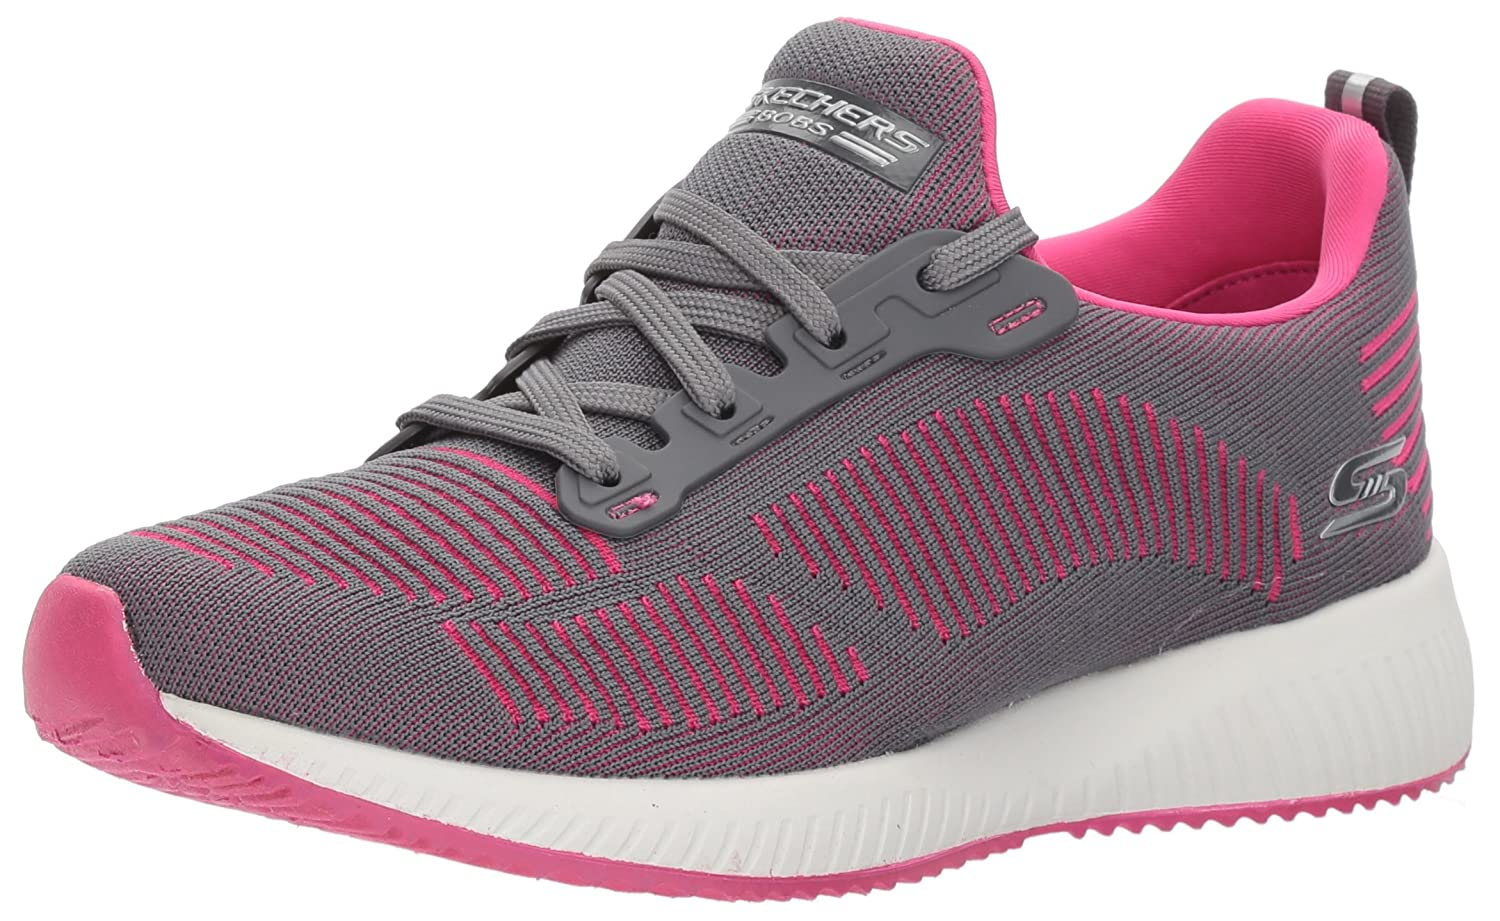 Skechers BOBS from Women's Bobs Squad-Twinning Fashion Sneaker B0719WY44Z 5.5 B(M) US|Charcoal Pink